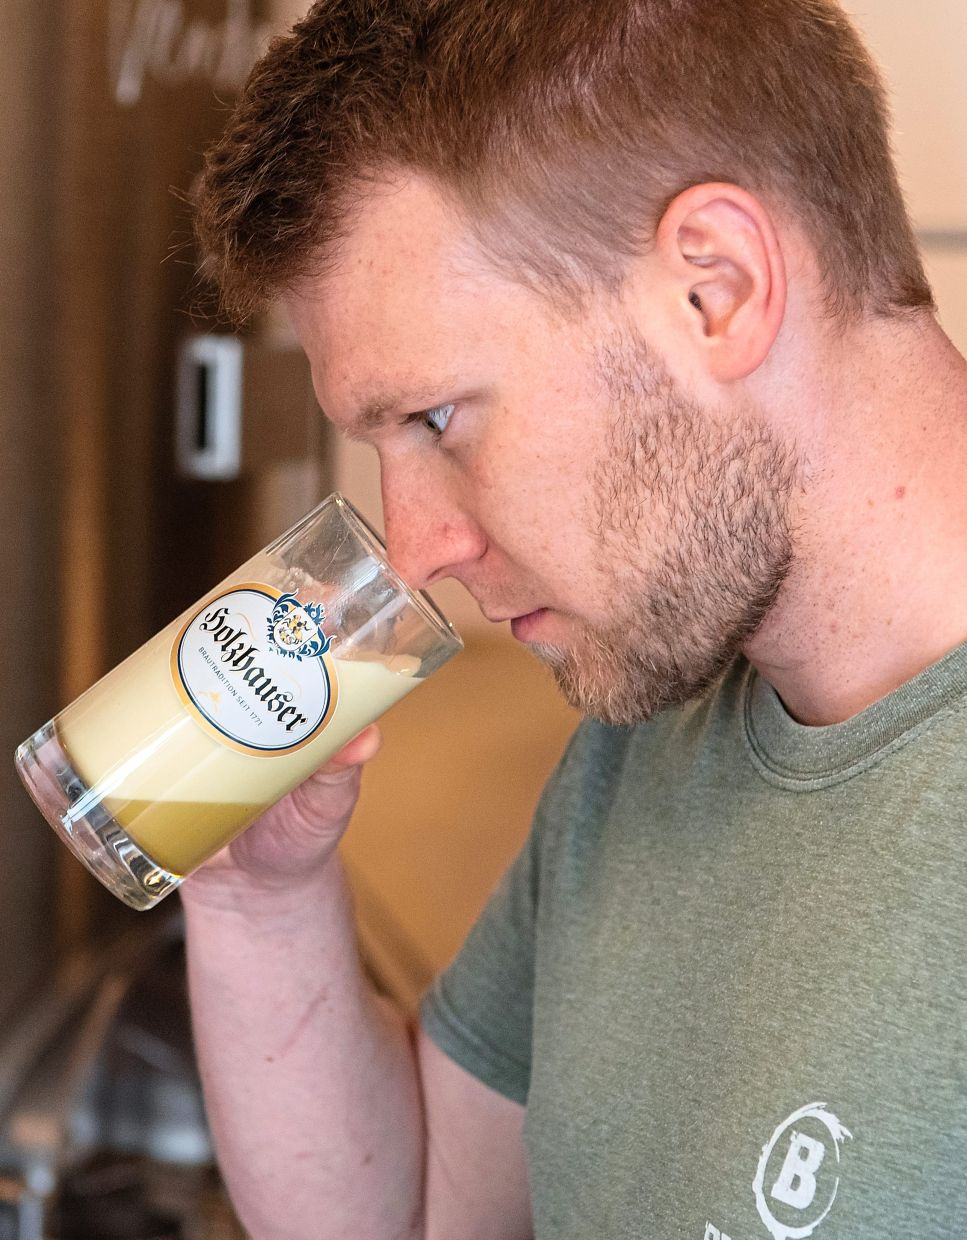 The Munich Brew Mafia made a special pandemic brew that sold out within six hours, says managing director Stieren.